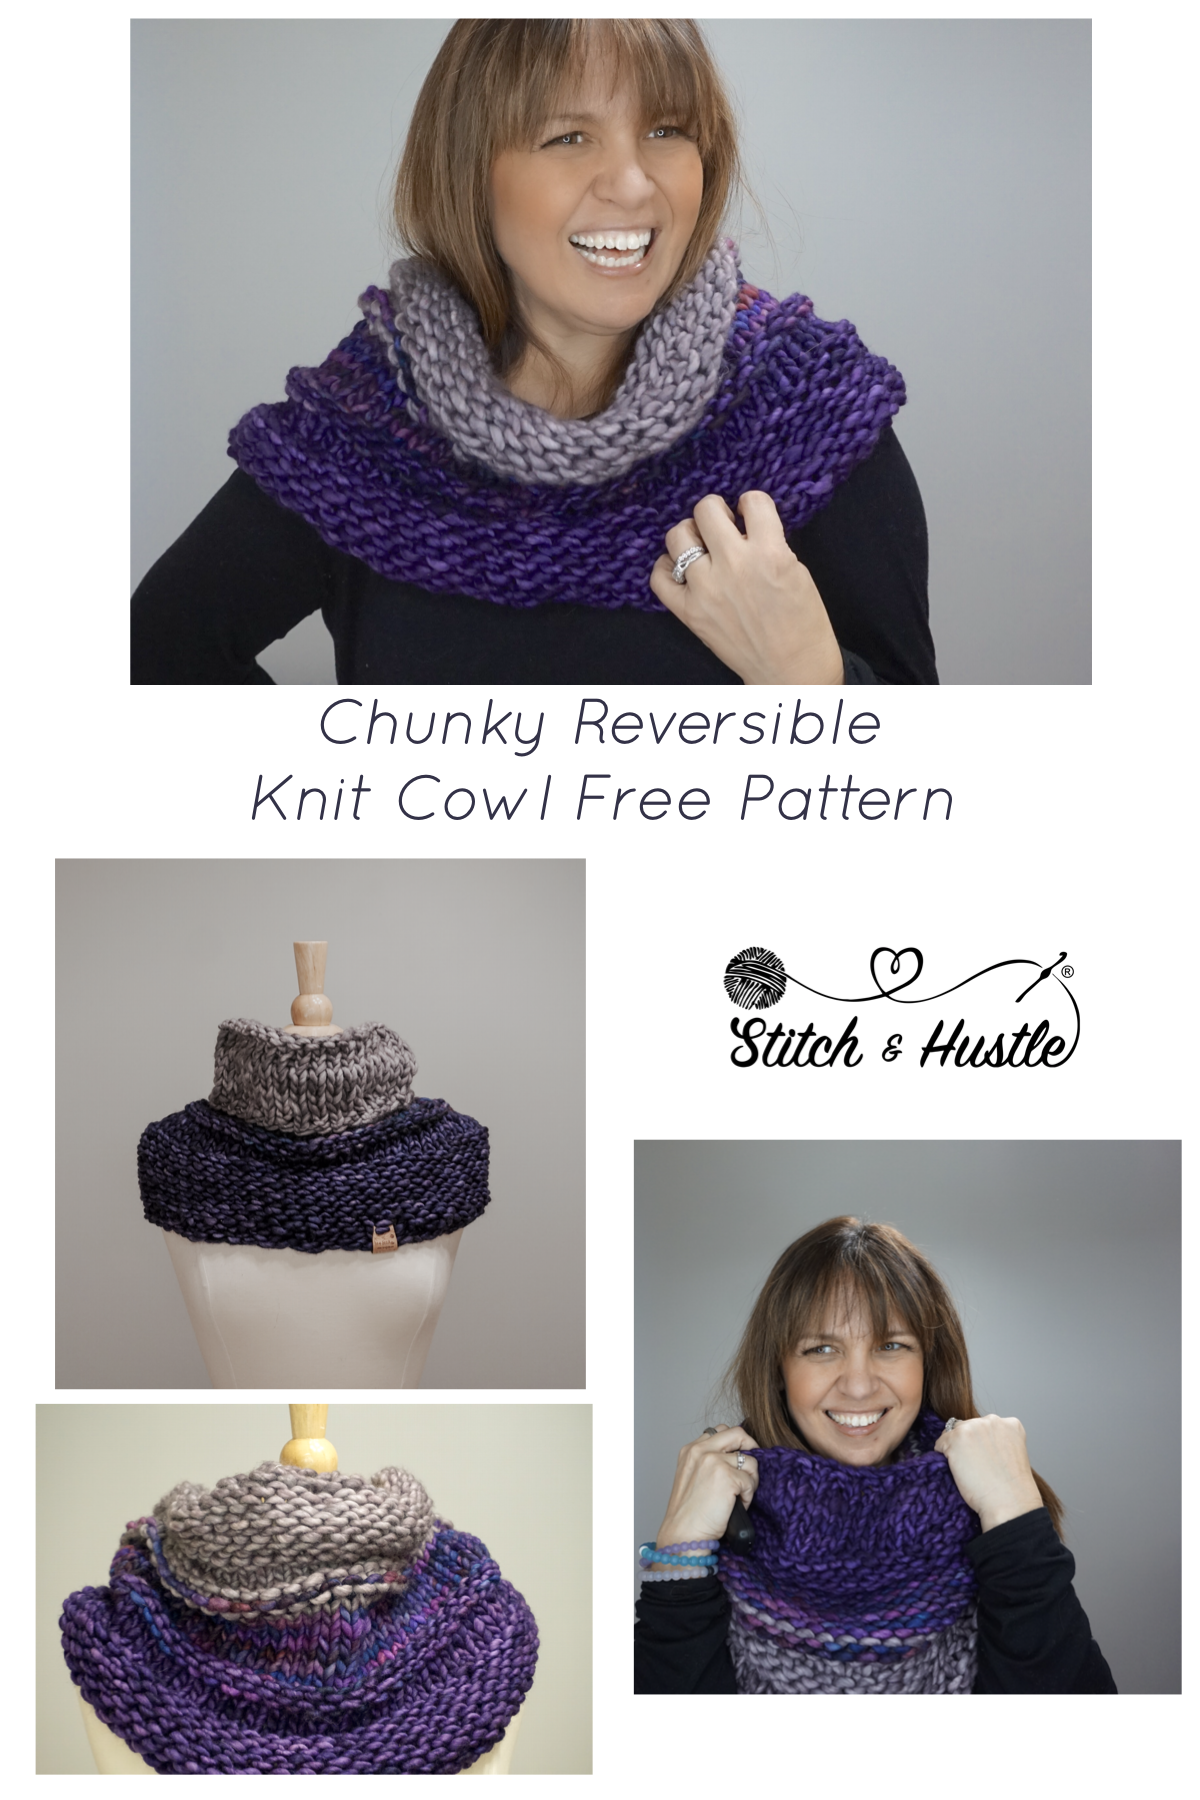 The Central Park Knit Cowl - Free Pattern | Knit cowl, Free pattern ...